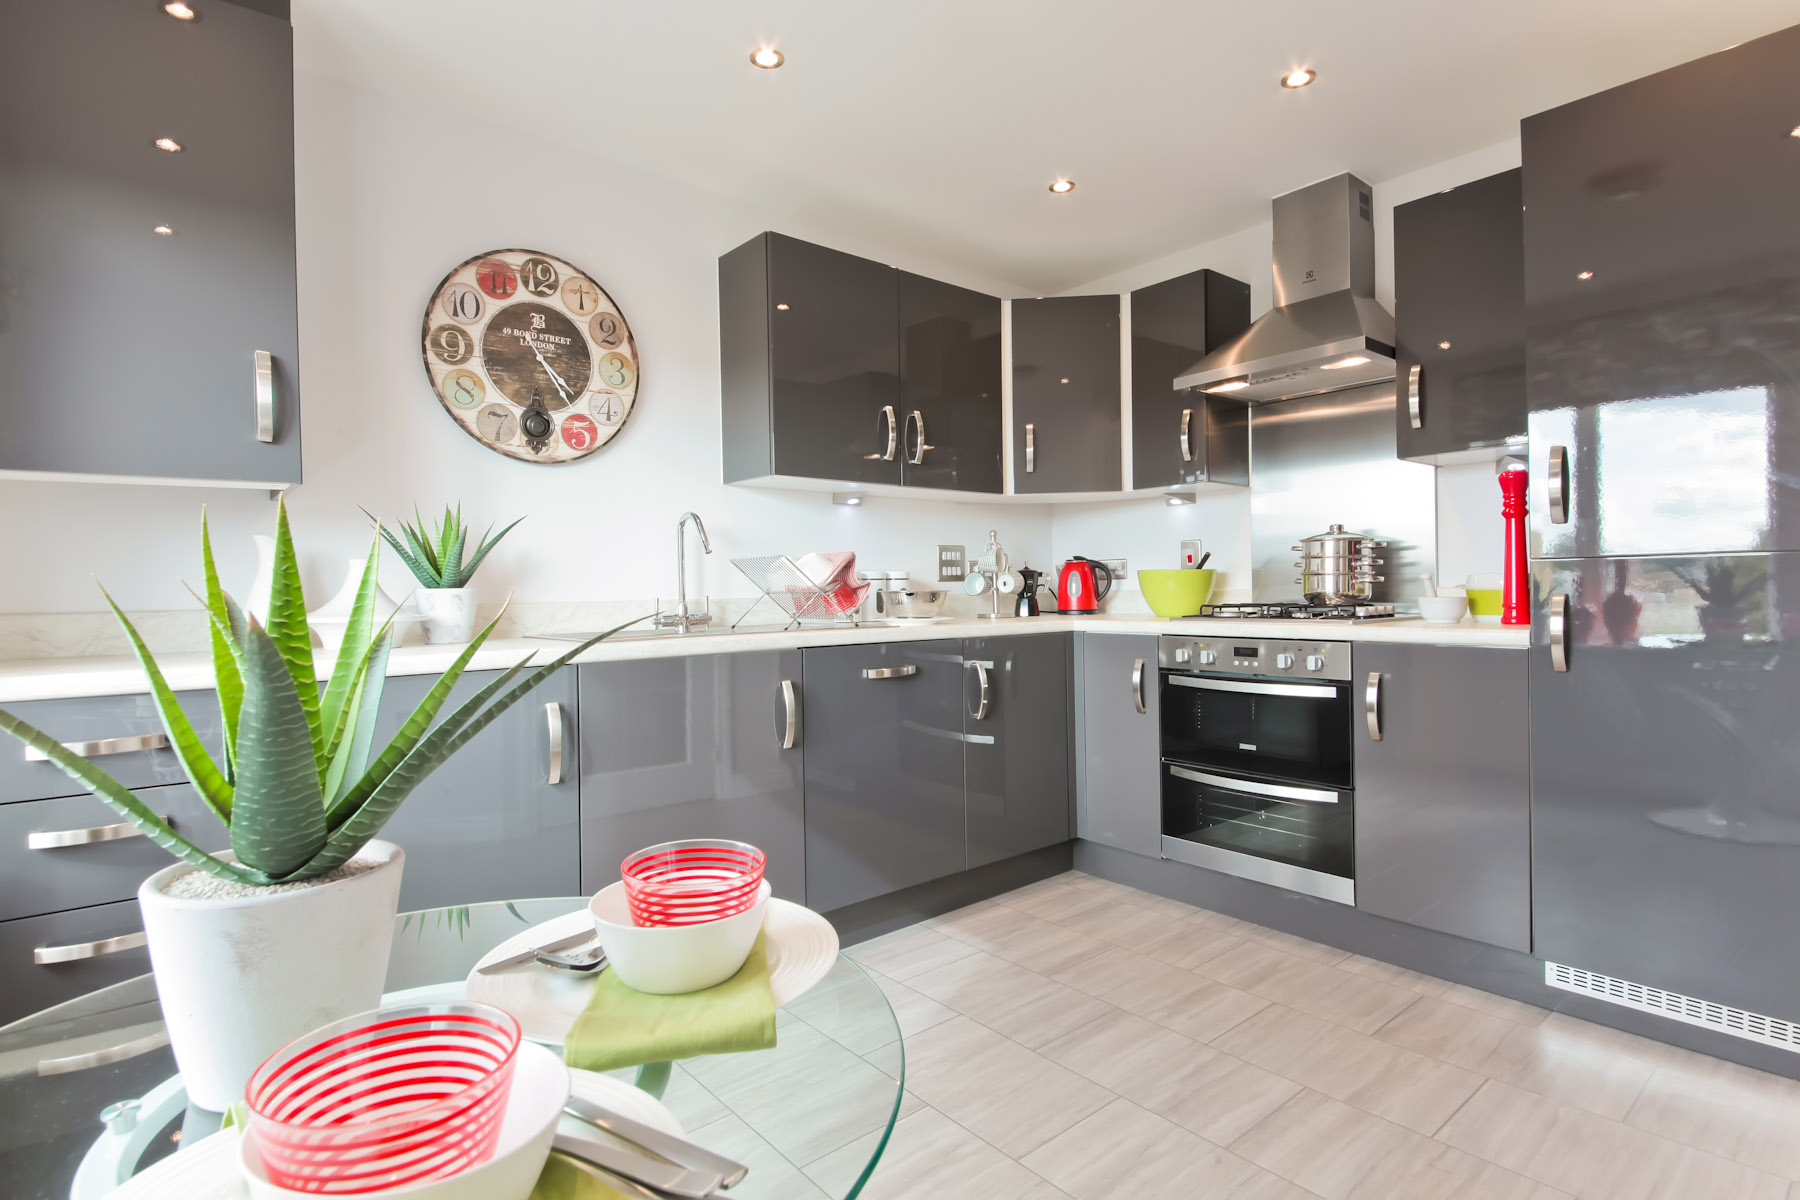 Cherry Tree Gardens Flatford example kitchen